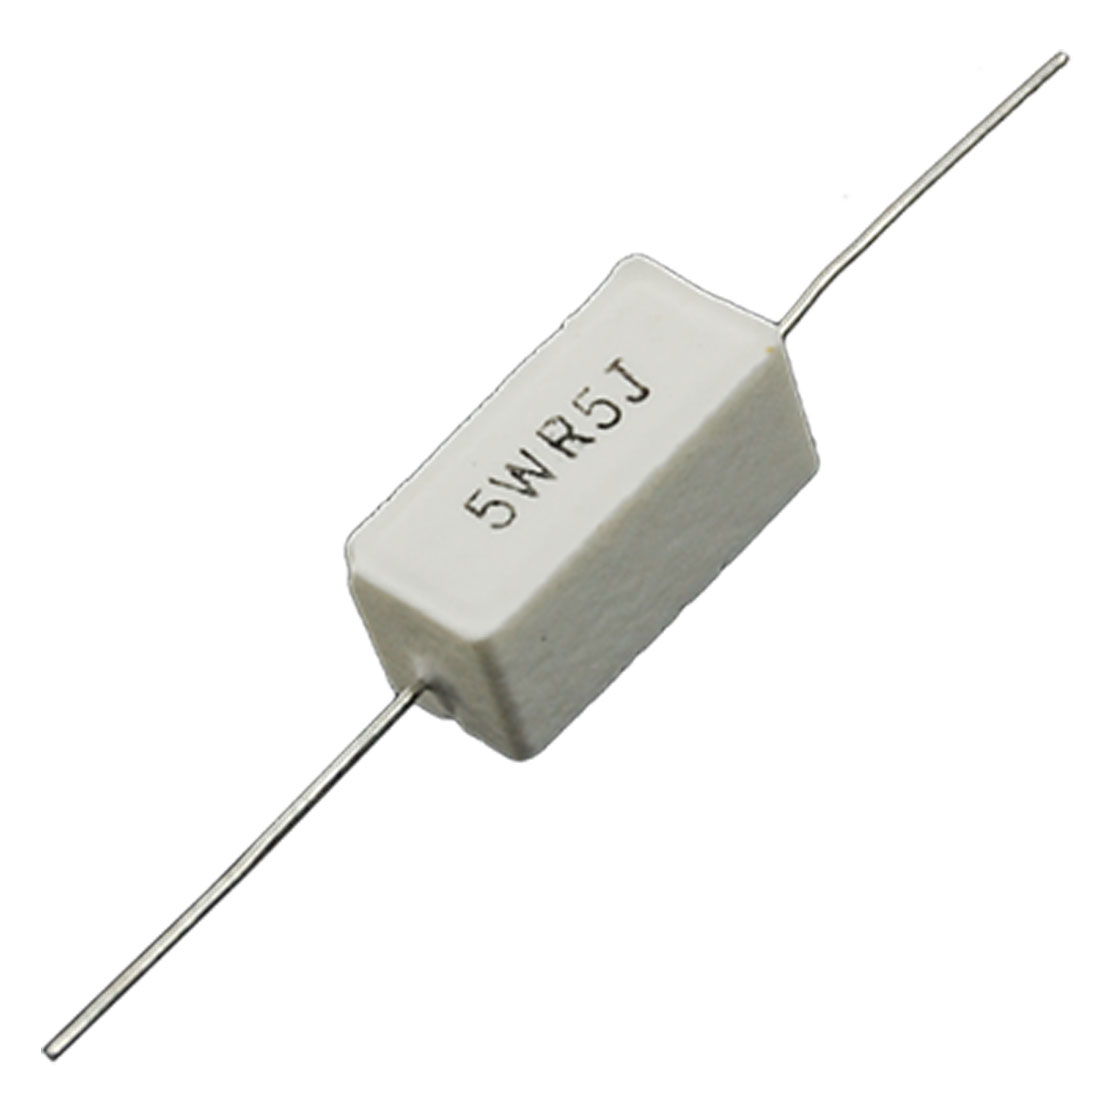 10 Pcs Axial Lead Wire Wound Cement Resistors 0.5 Ohm 5W